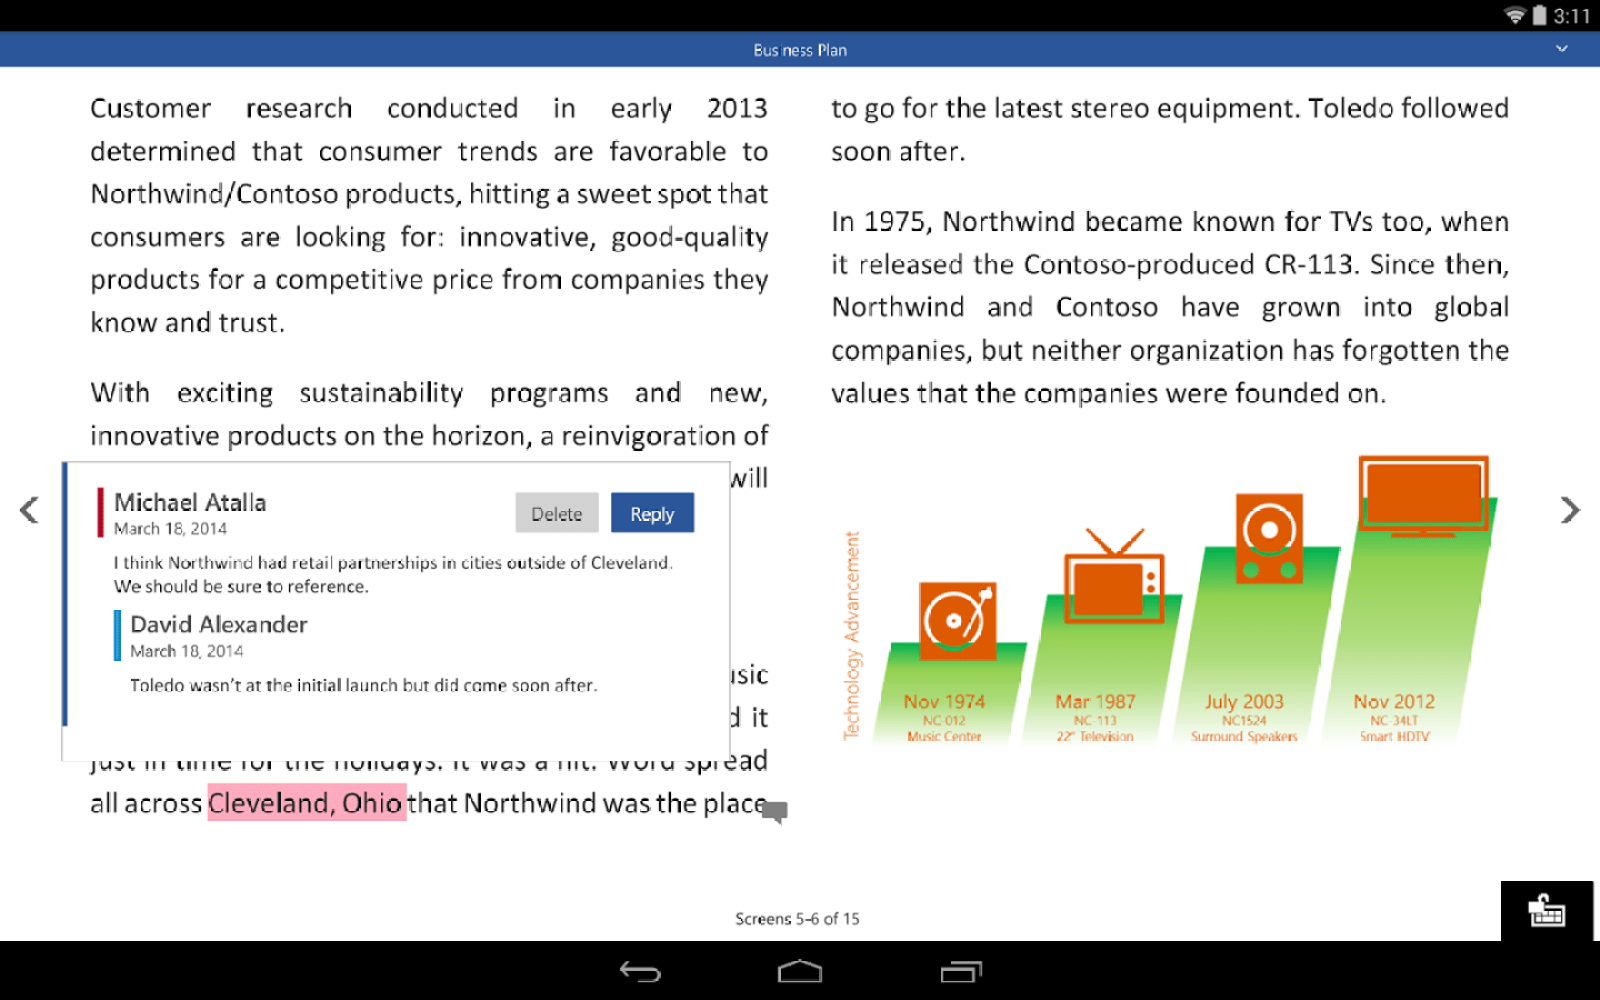 Preview versions of Microsoft Office apps for Android tablets now available on Google Play